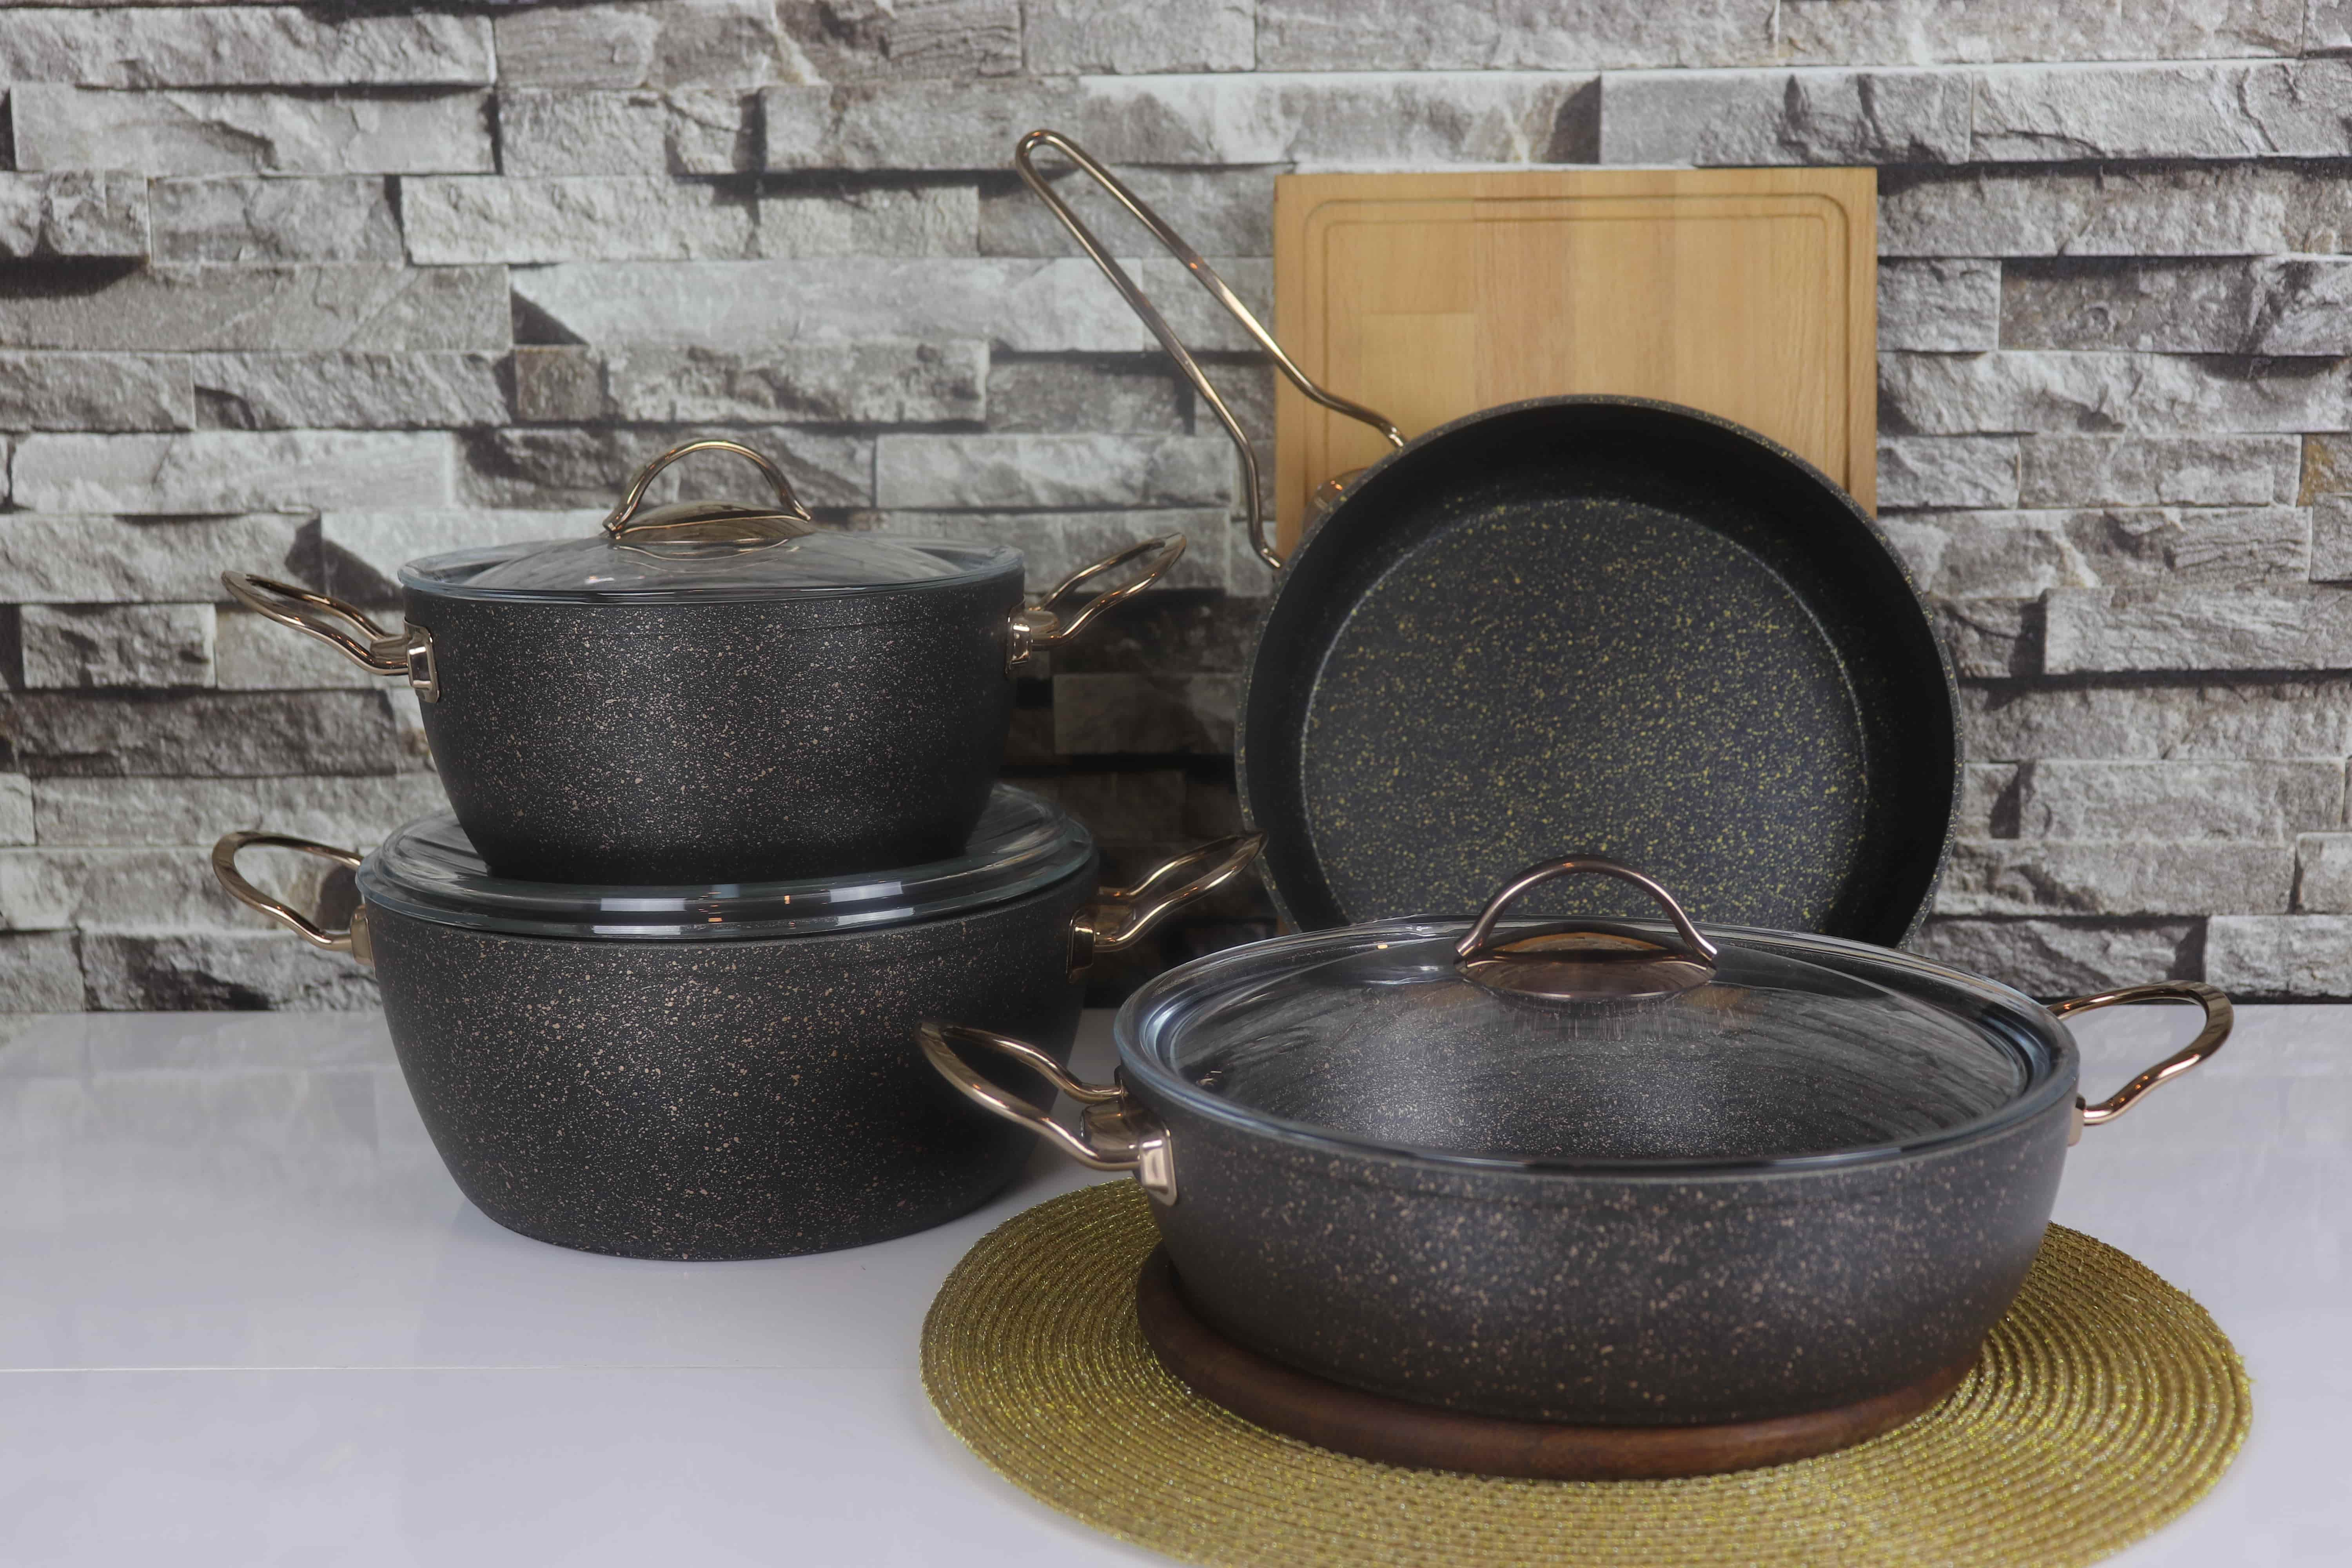 COOKWARE SET WITH COPPER HANDLE